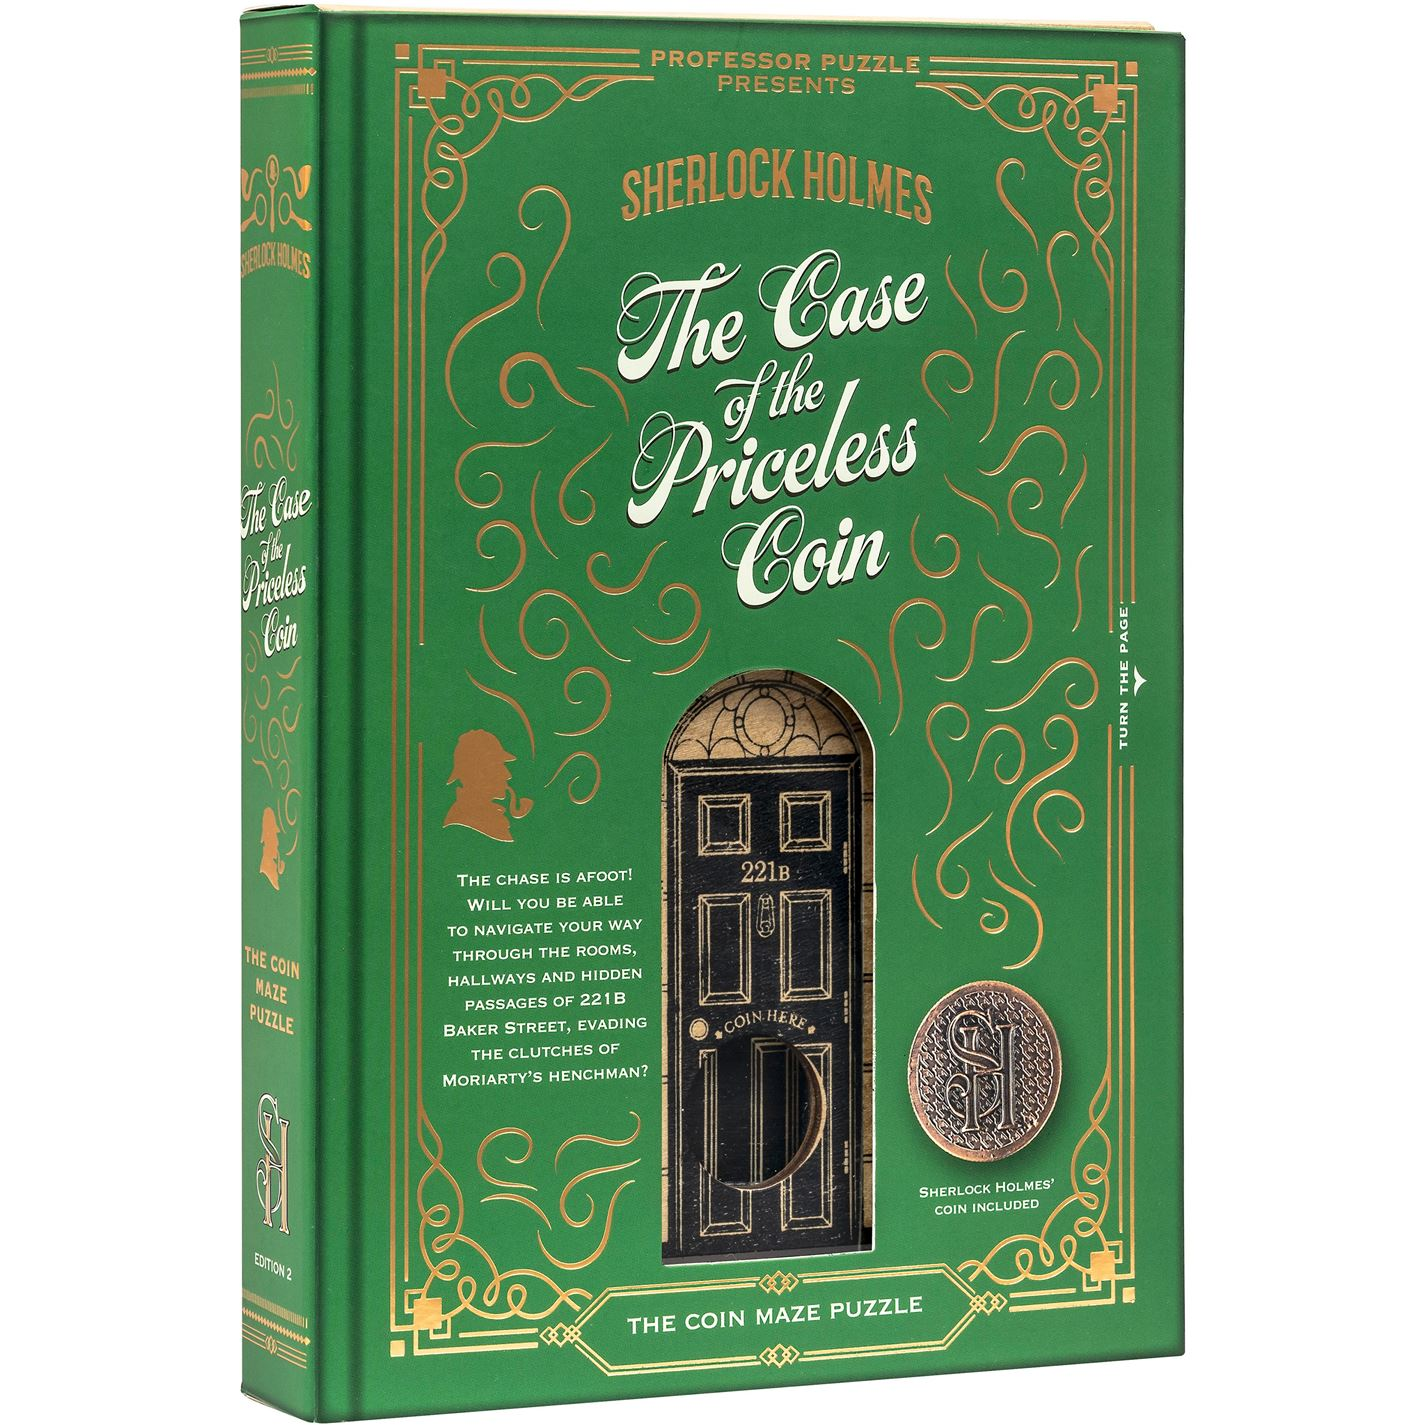 The Case of the Priceless Coin - Sherlock Holmes